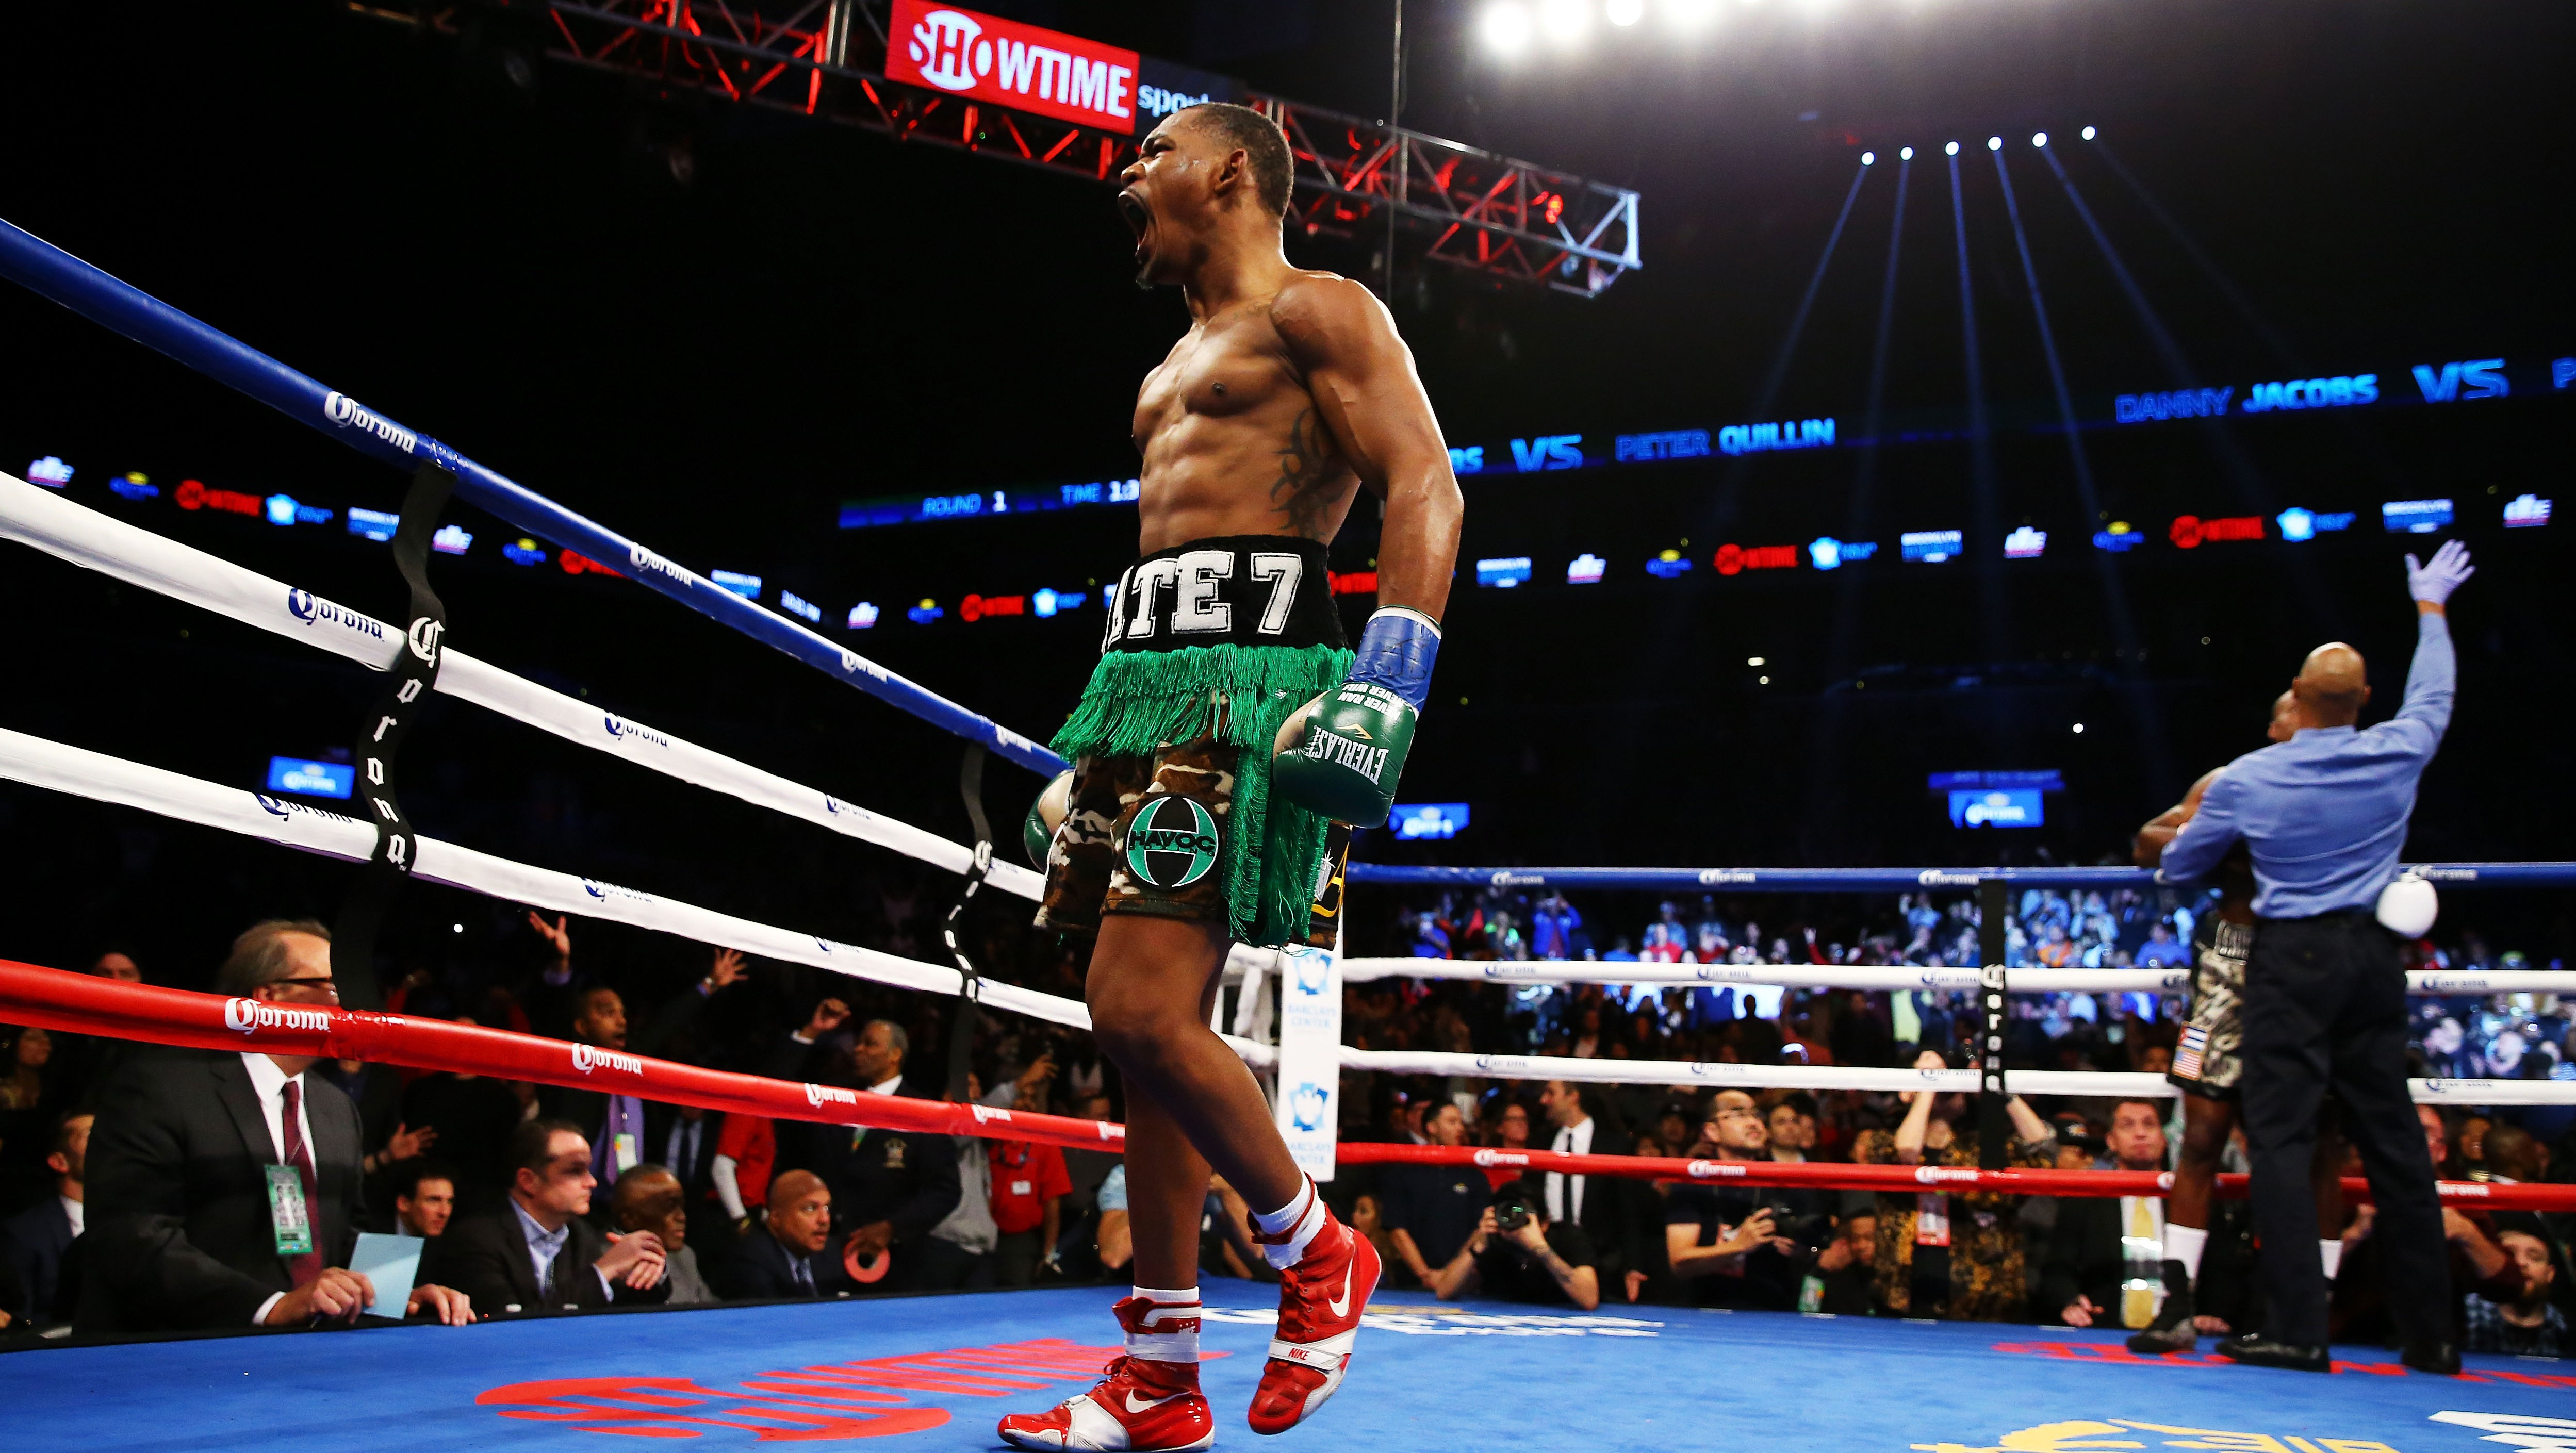 Daniel Jacobs successfully defends his WBA world middleweight title by stopping Peter Quillin.